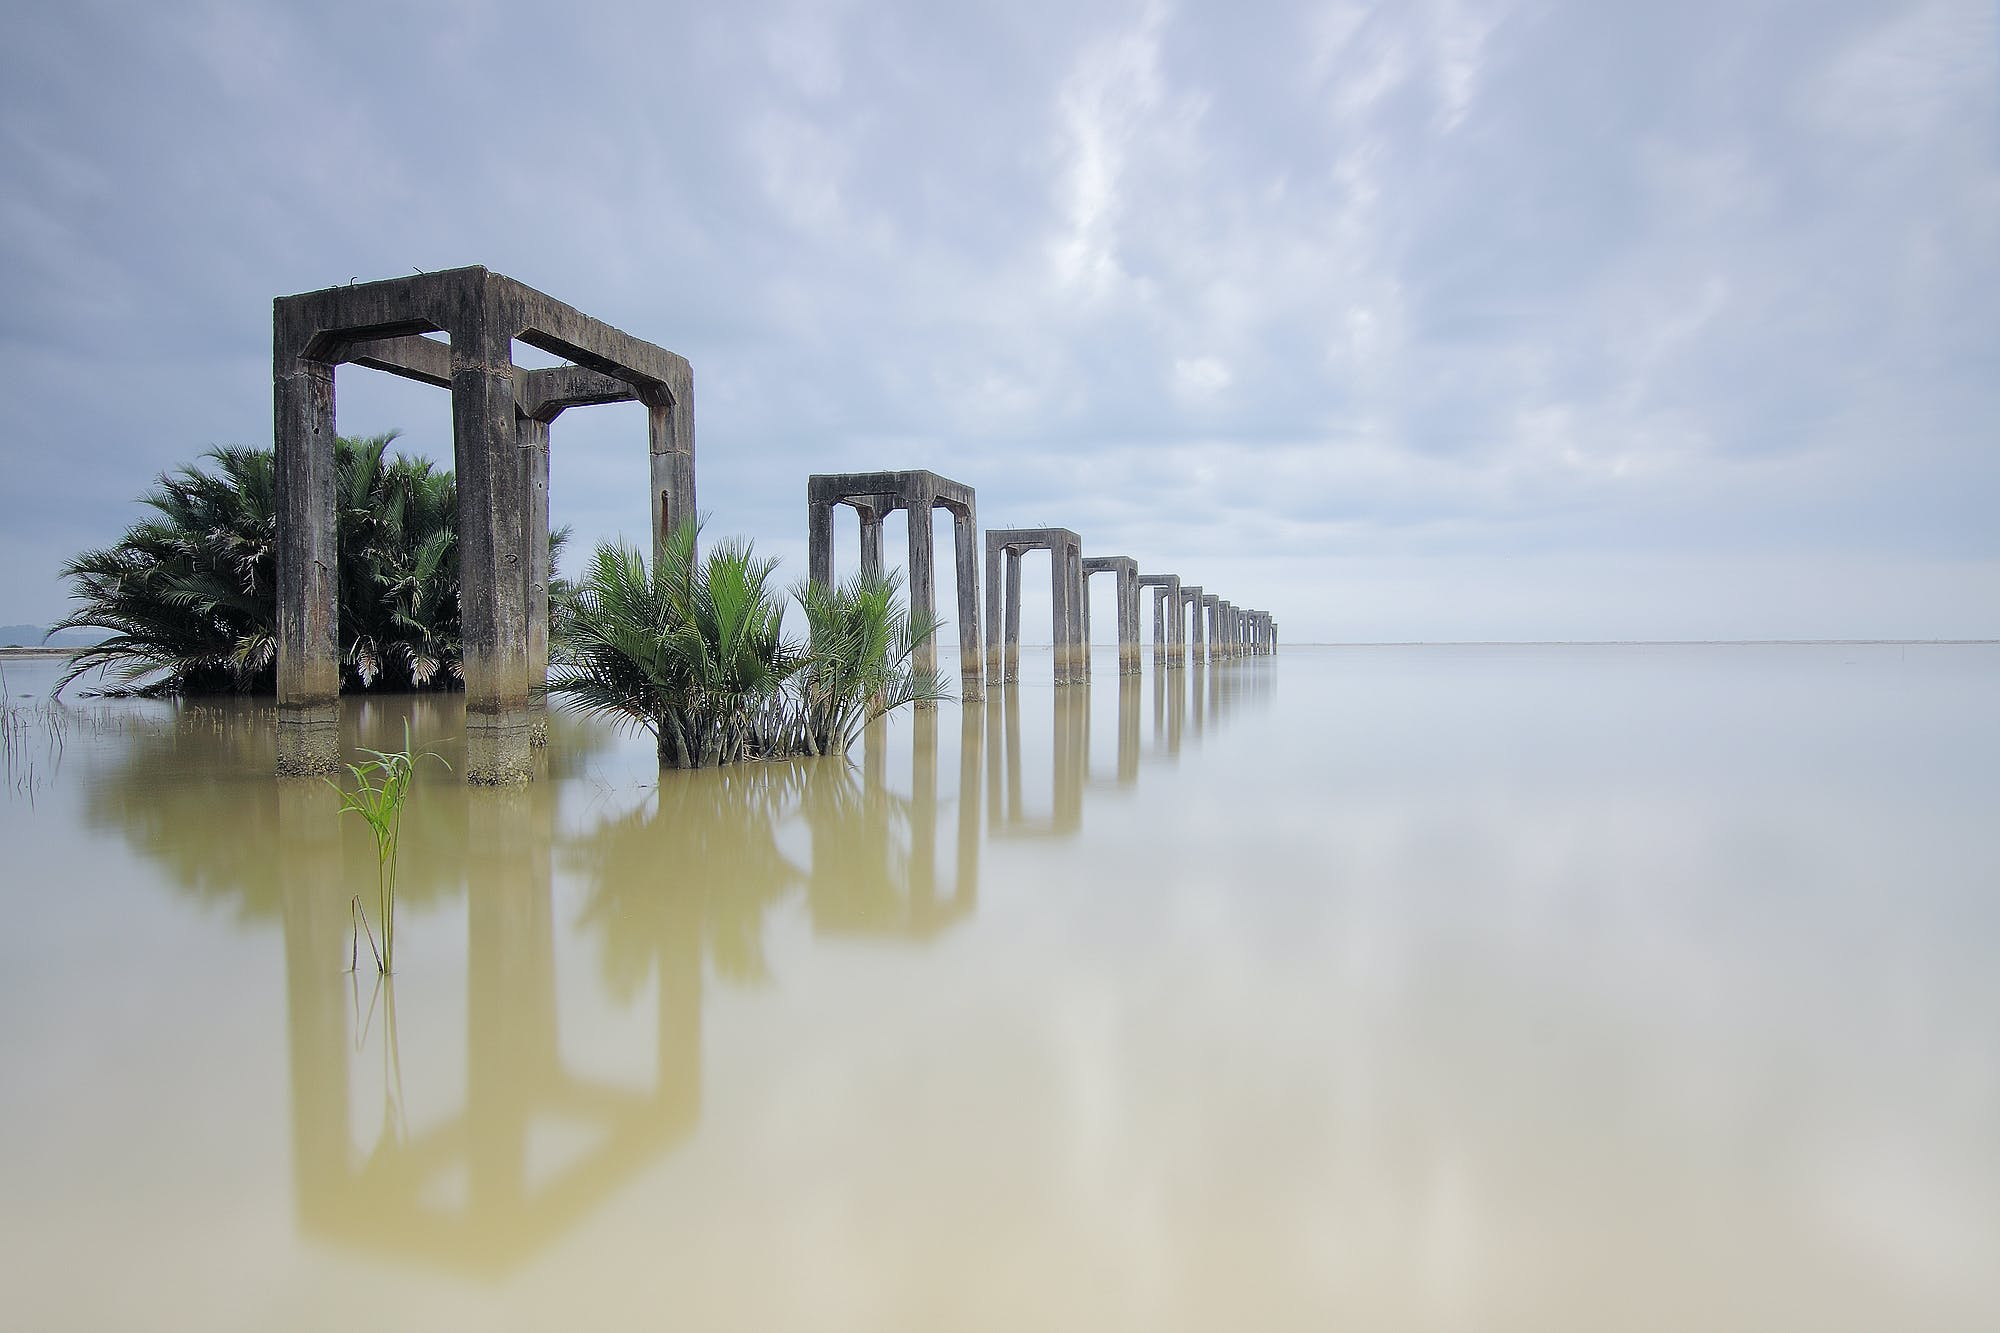 Gray Concrete Arches on Body of Water Under White Skies